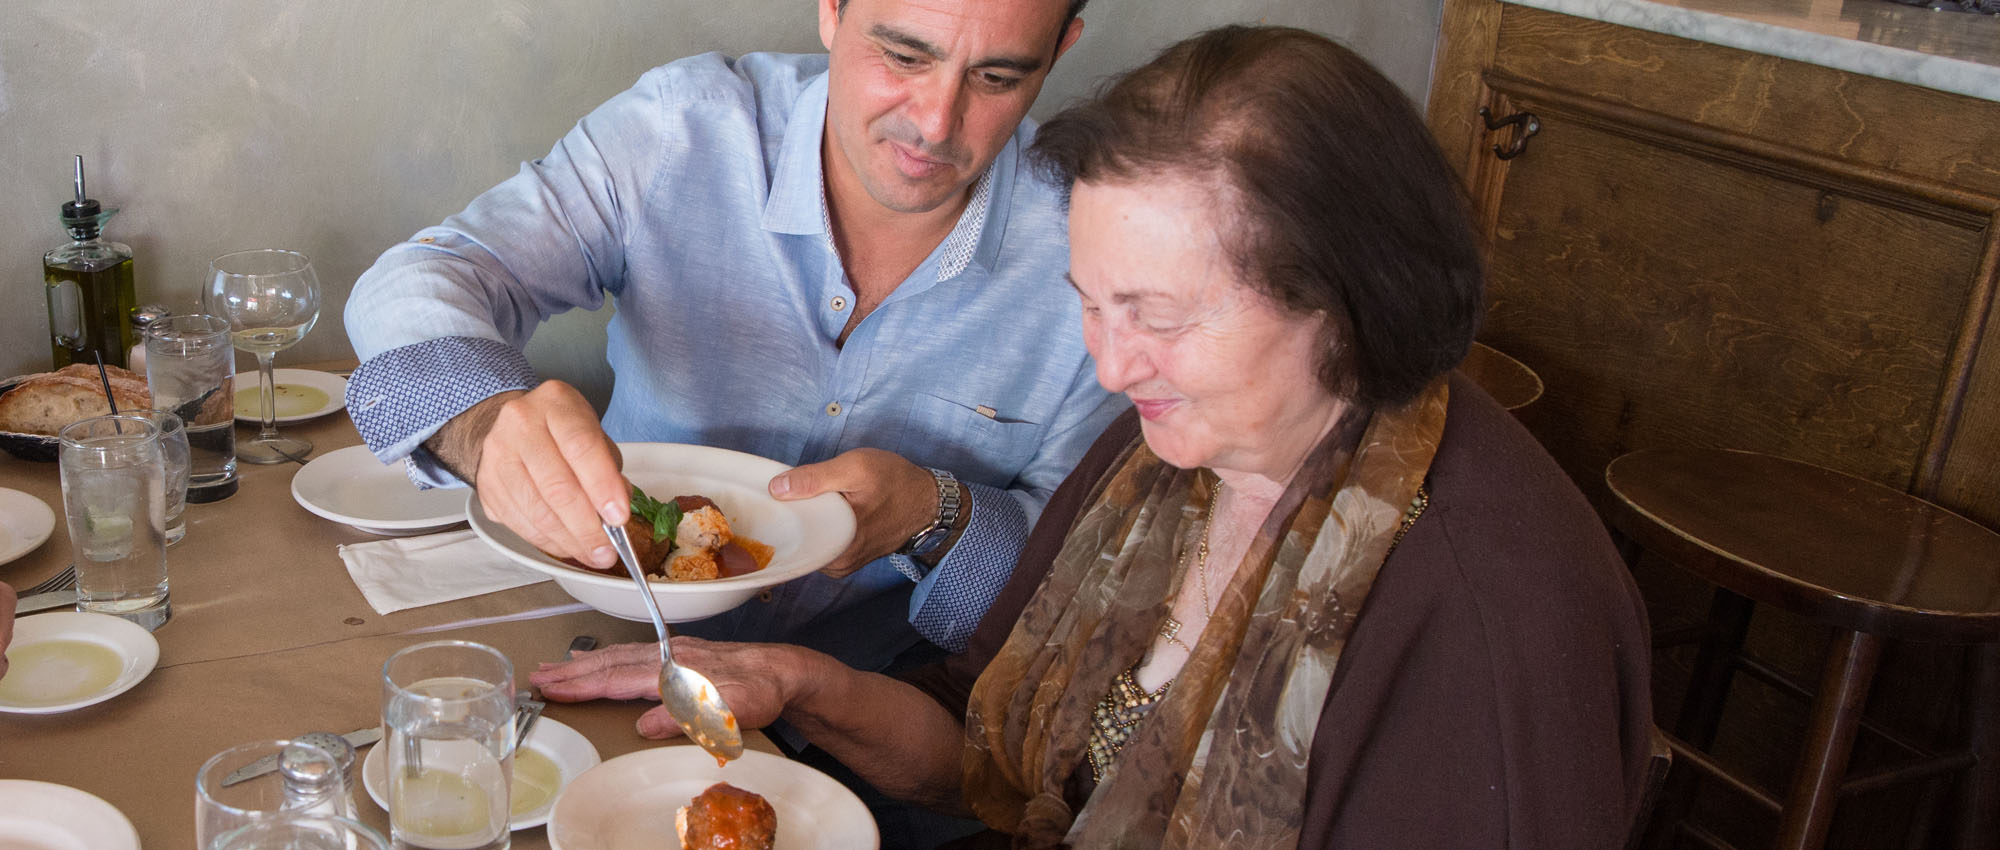 giving grandma a meatball